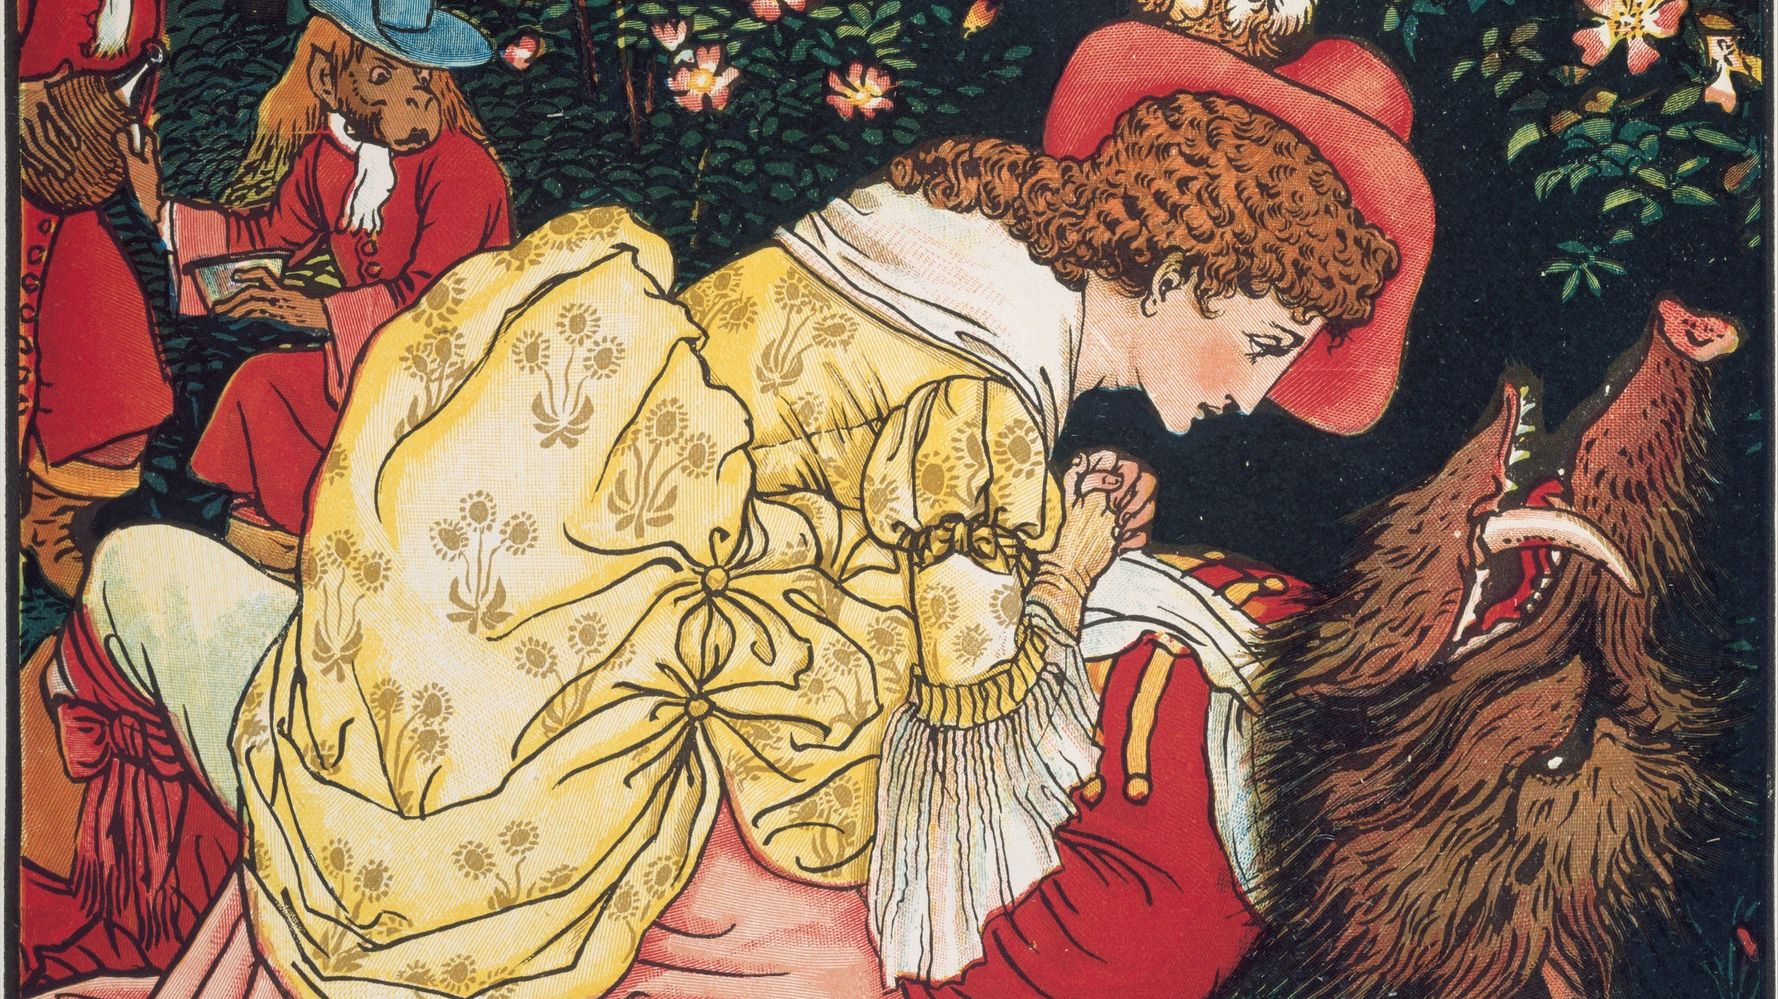 The Dark, Twisted Fairy Tales 'Beauty And The Beast' Is